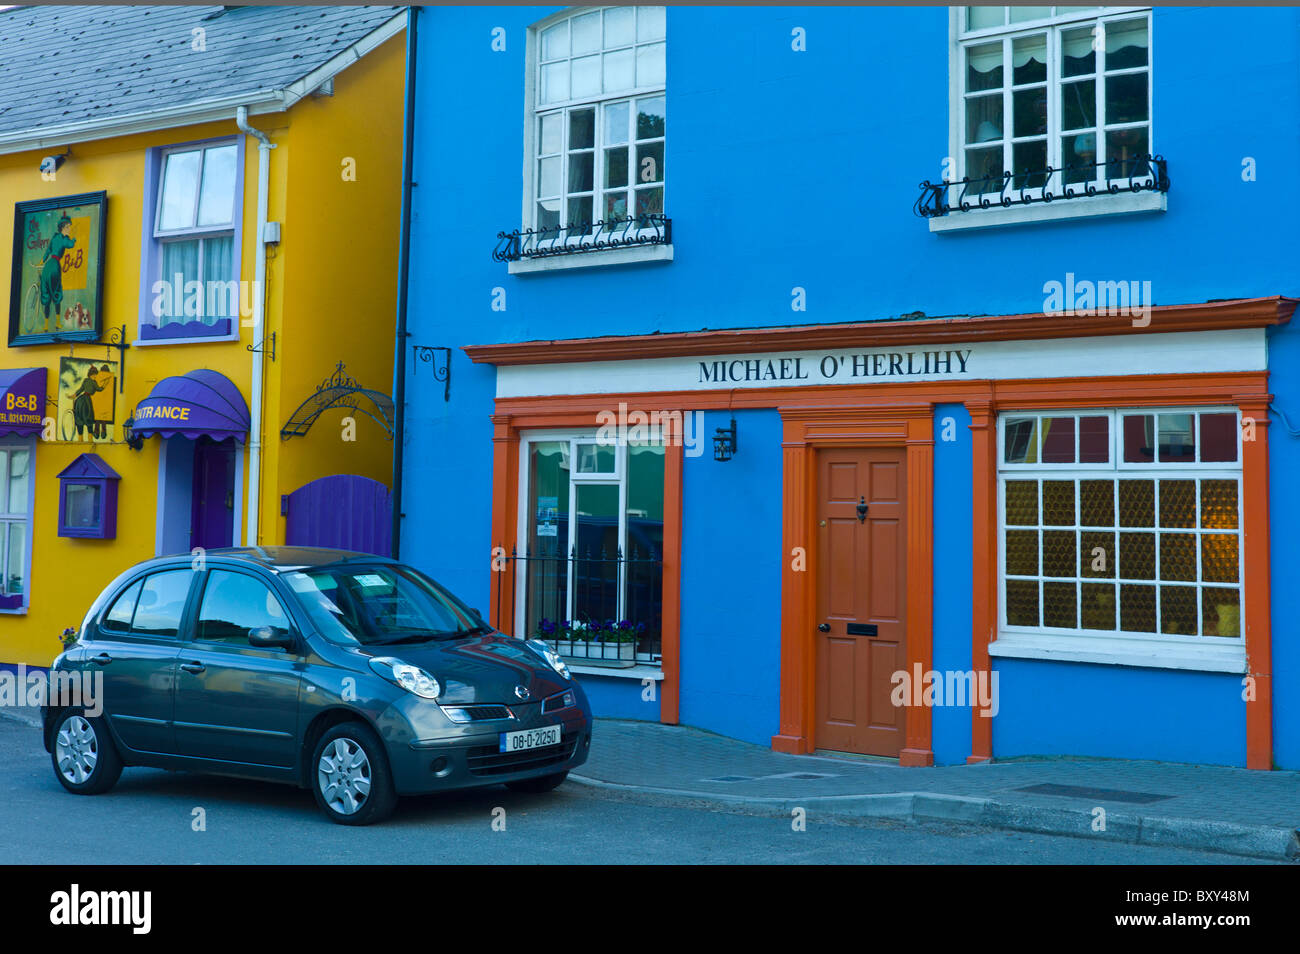 Street scene of traditional brightly coloured properties in Kinsale, County Cork, Ireland - Stock Image